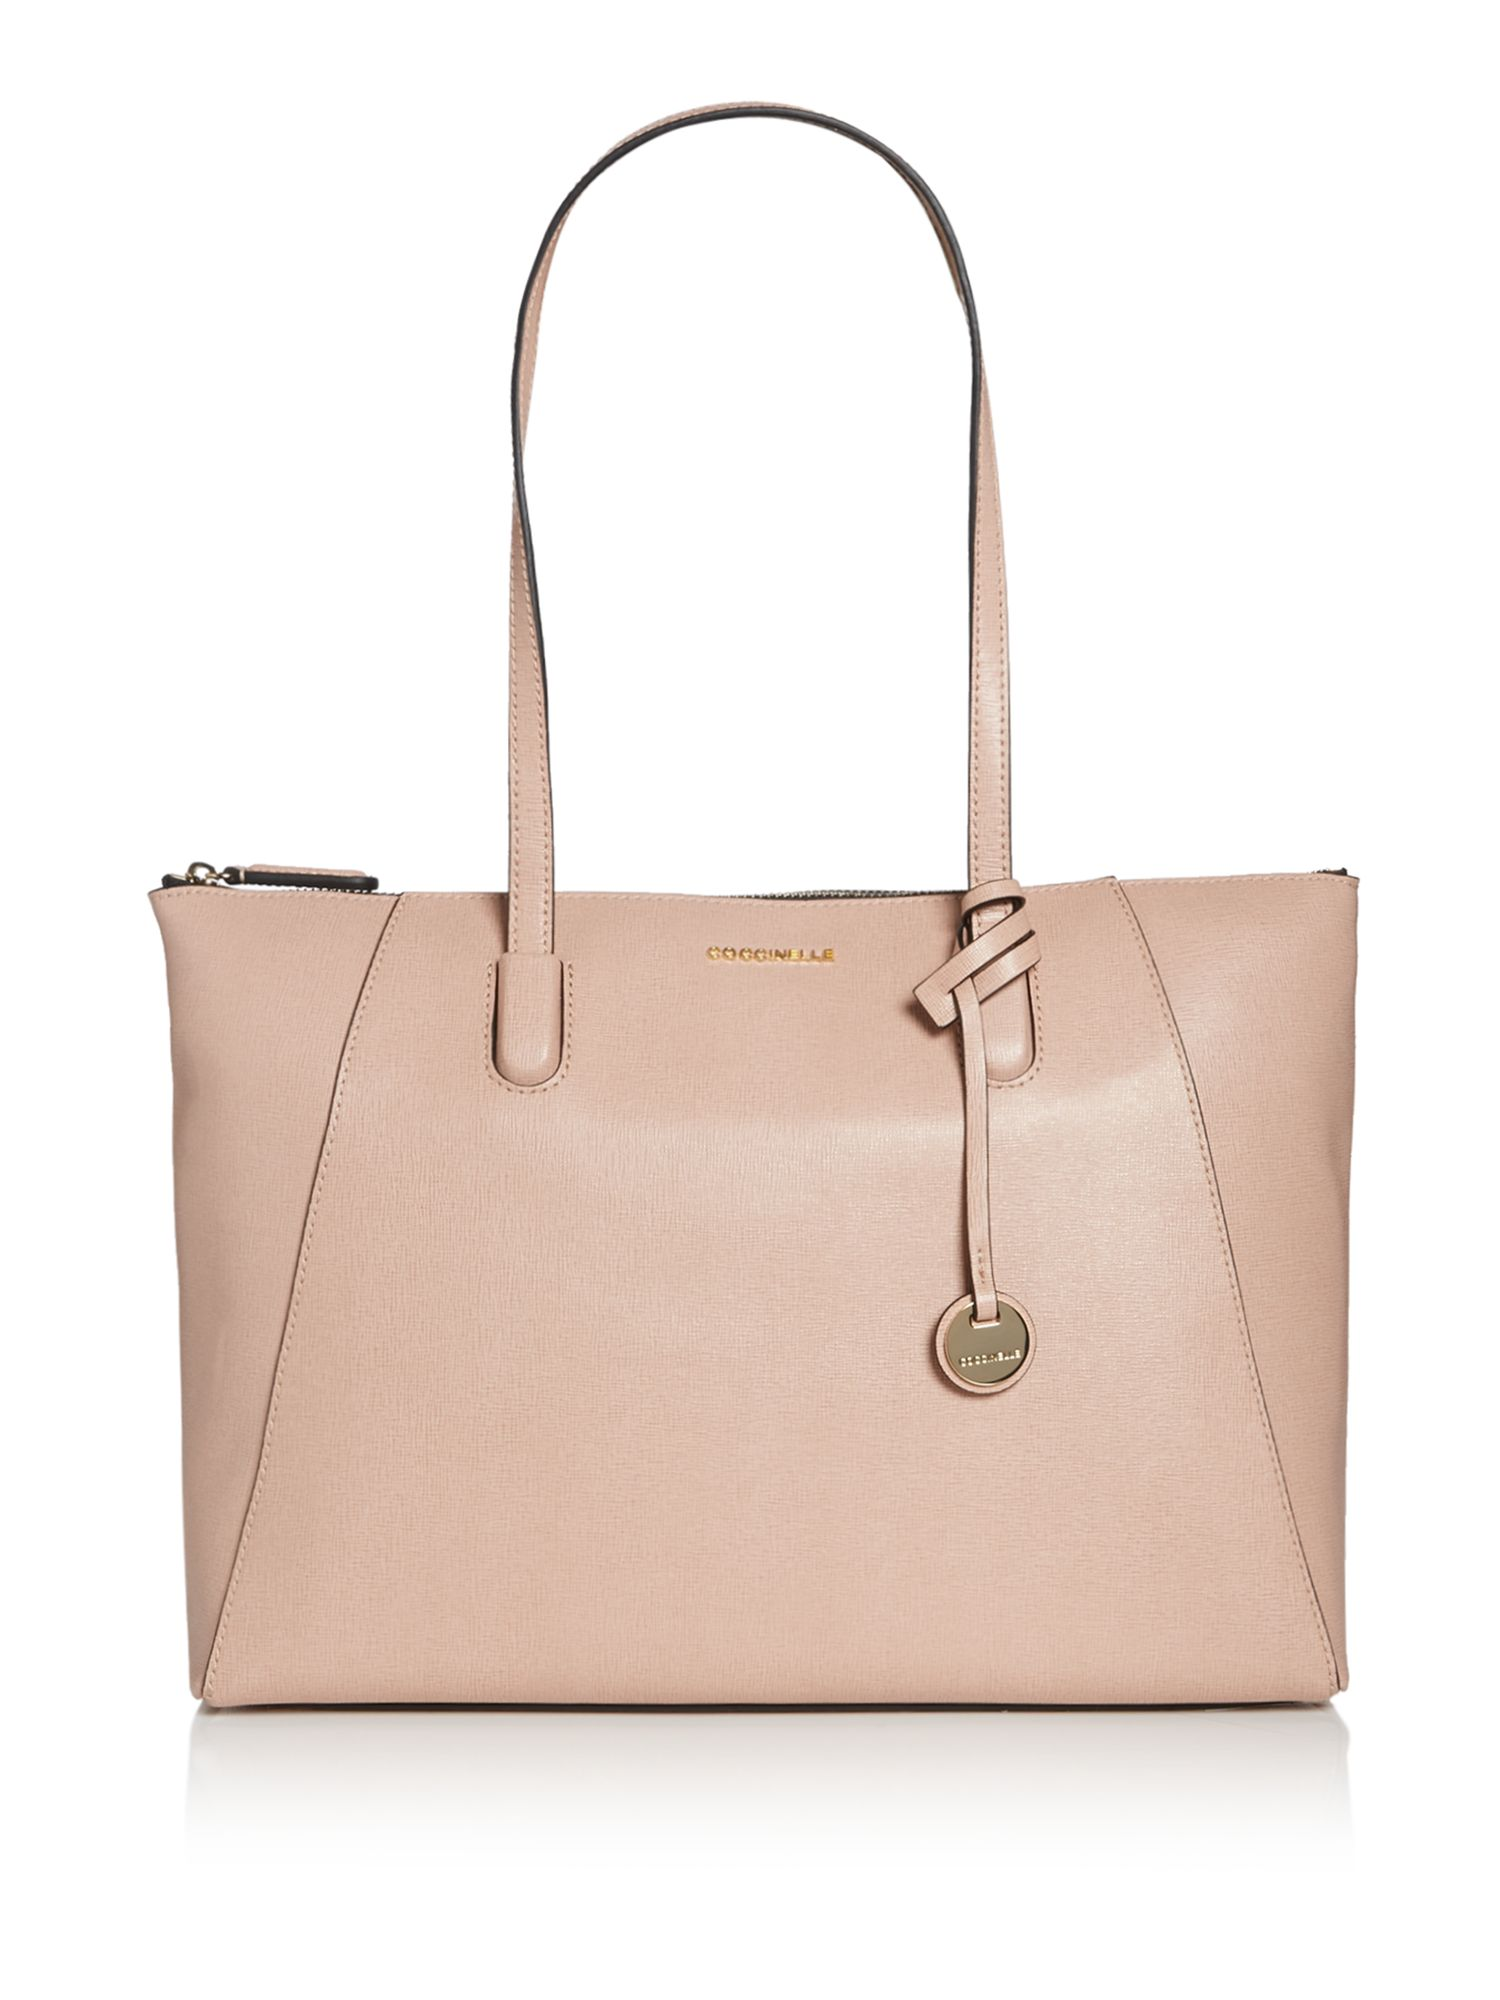 Coccinelle Clementine saffiano east west tote, Pink